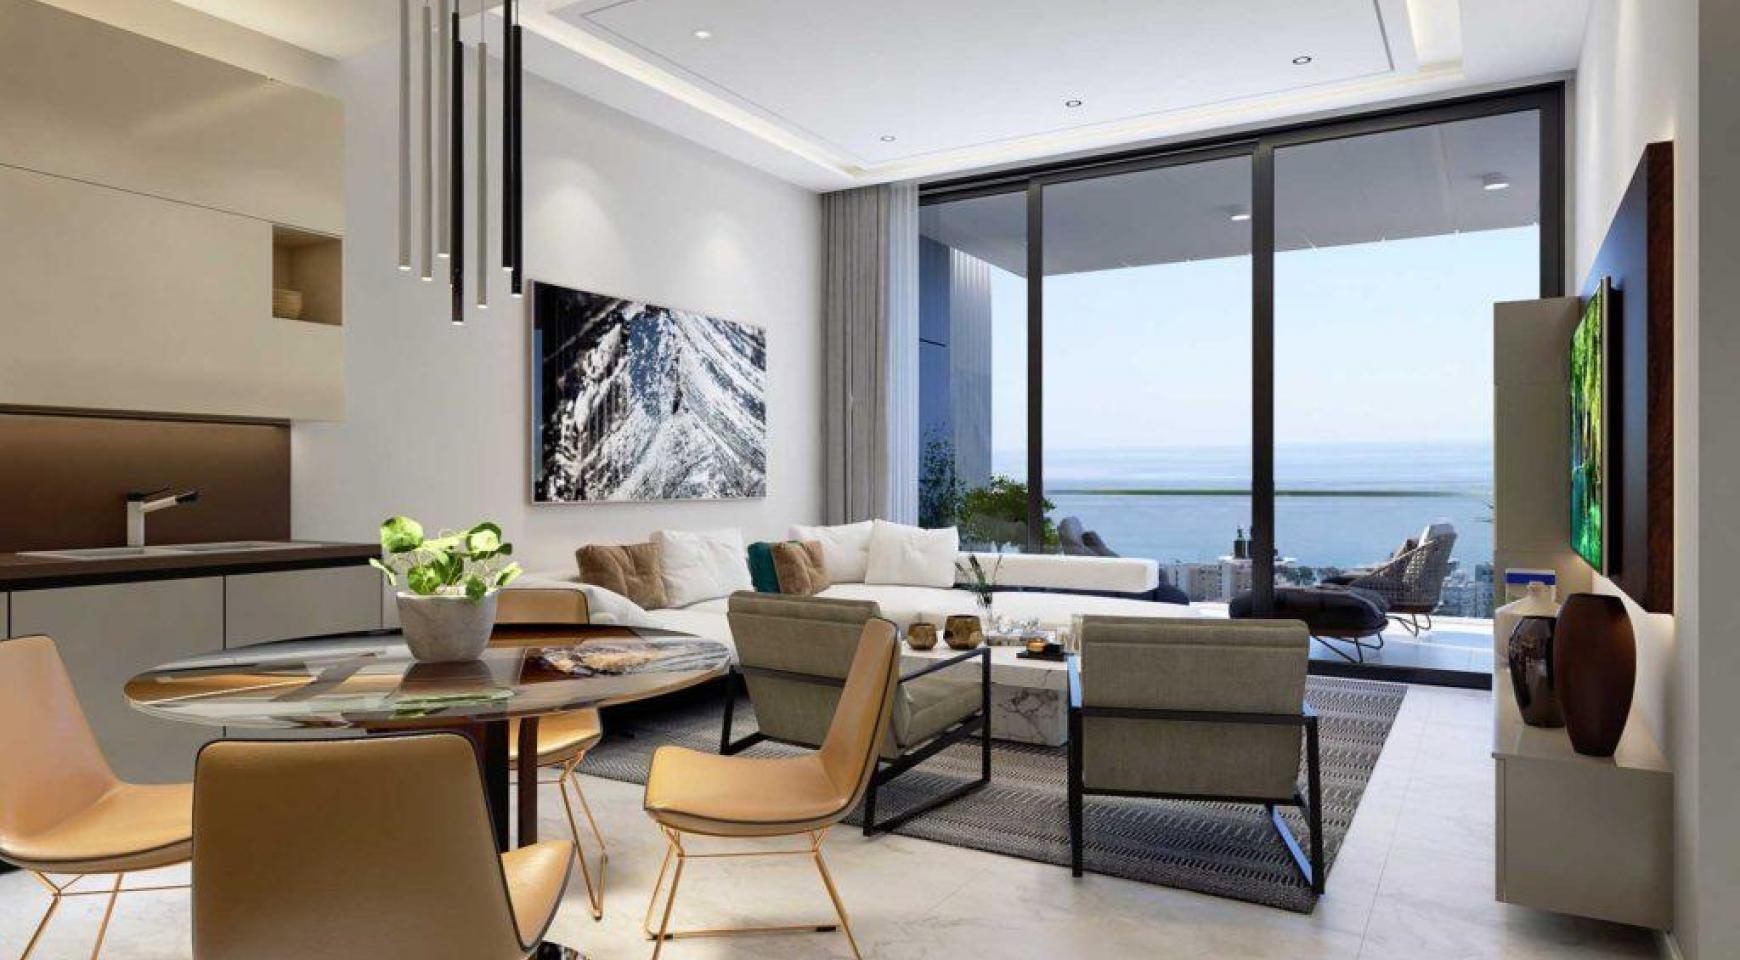 Contemporary 3 Bedroom Apartment with Sea Views in a Luxury Complex - 4